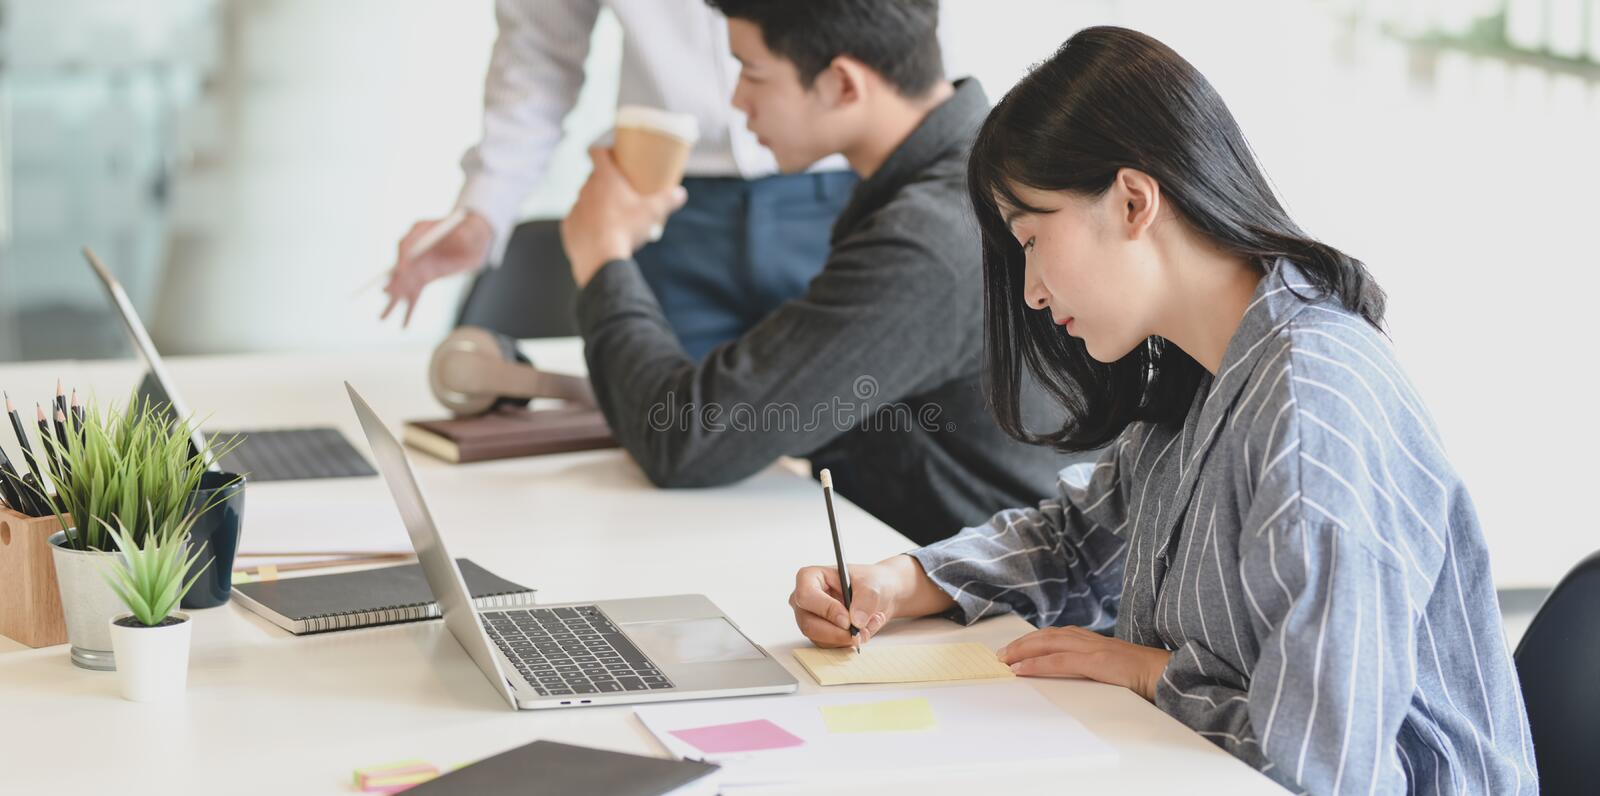 Young businesswoman working on her project with her team members discussing in the background stock images